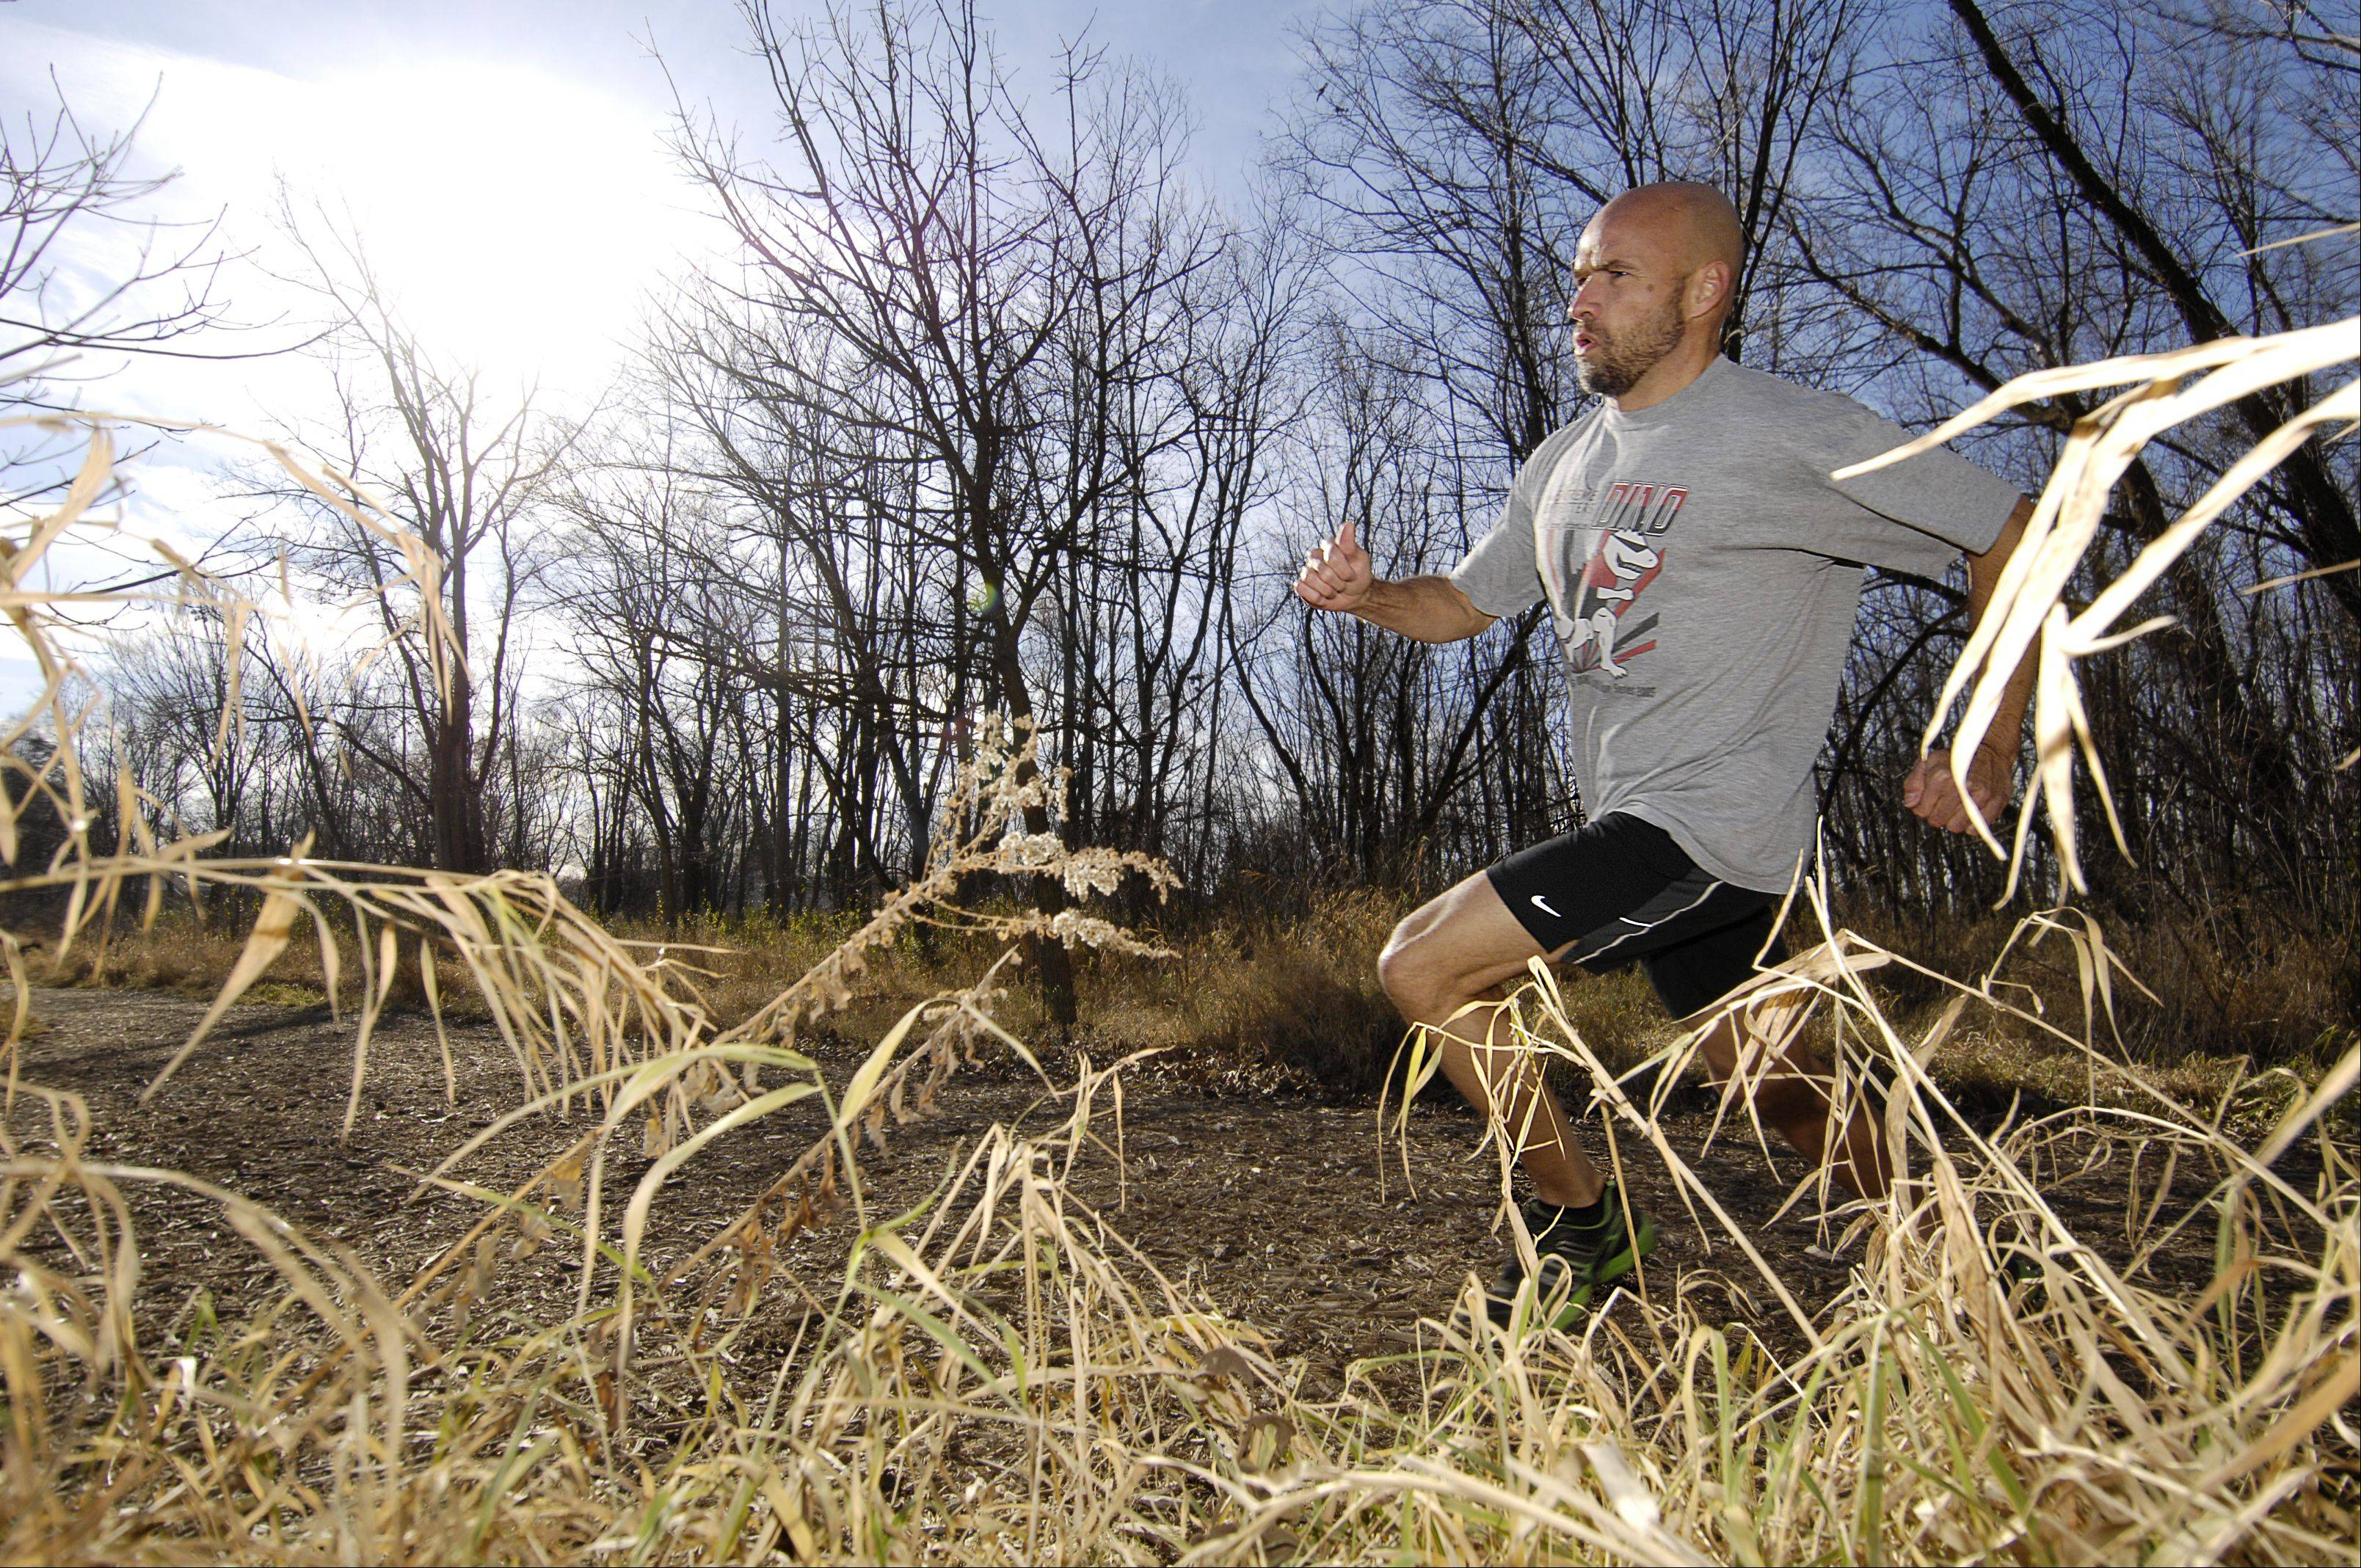 Mike DeMeritt of West Chicago competes each year in a 100-mile race in Wisconsin to raise money for DuPage PADS. He's part of the planning committee for the organization's Run 4 Home.